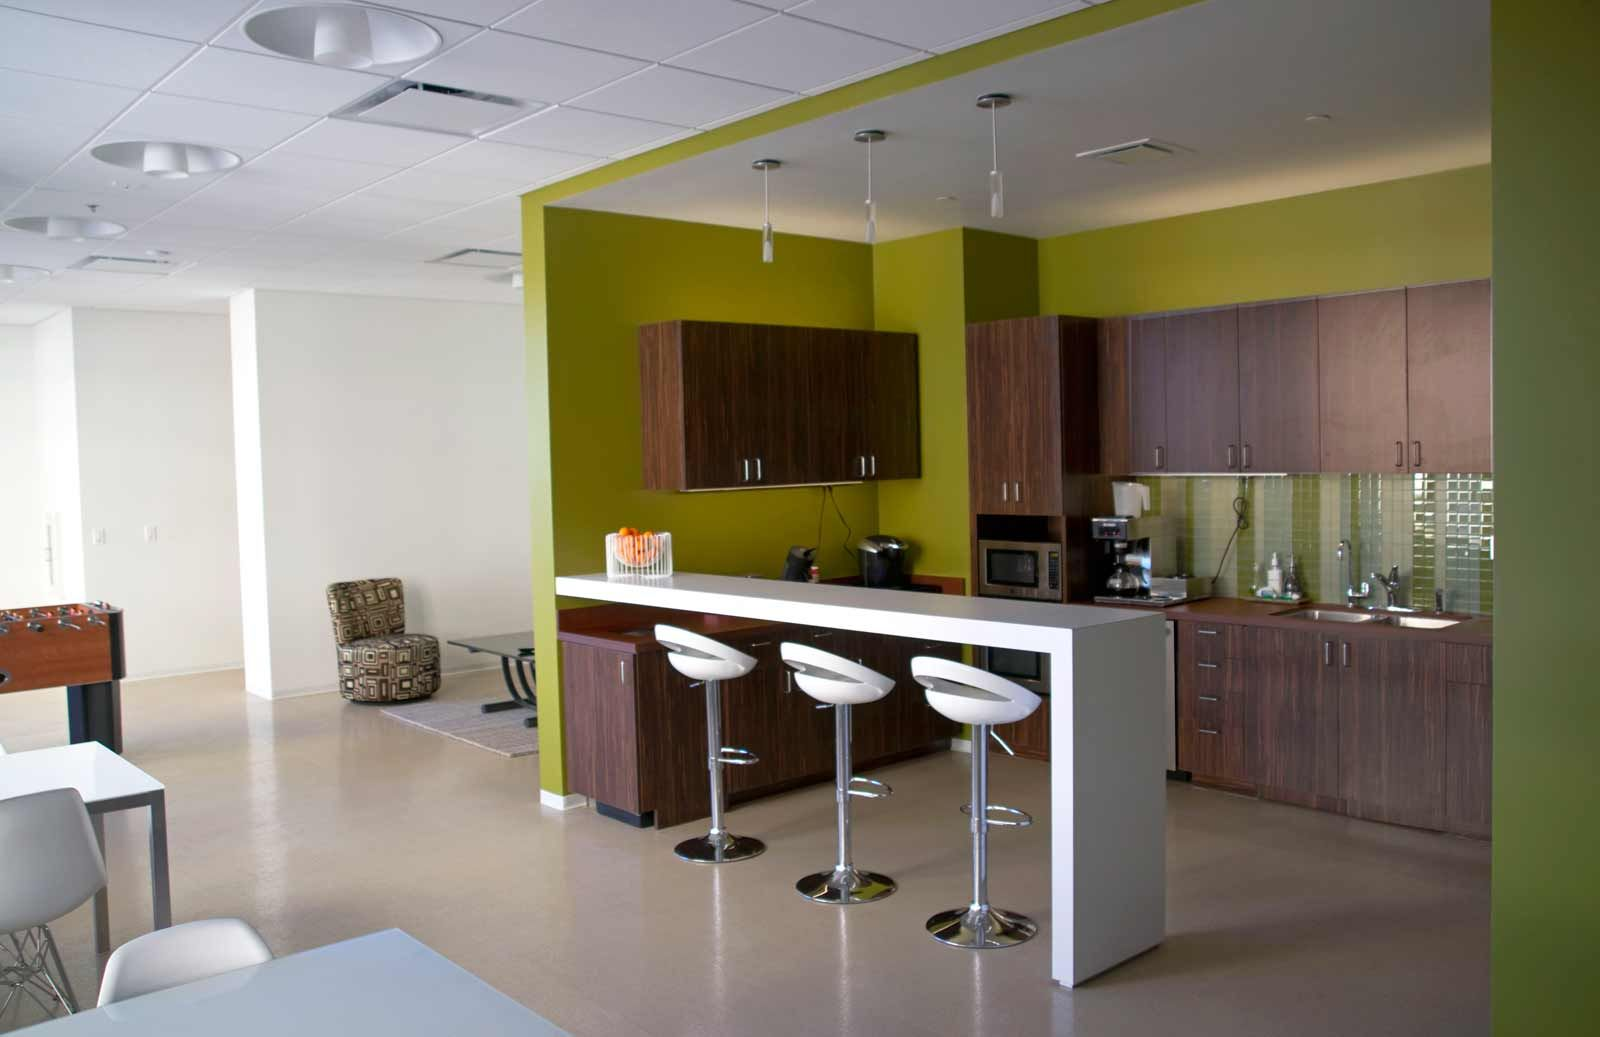 walmart kitchen appliances inexpensive countertops for kitchens cantilever bar height table break out meeting ...